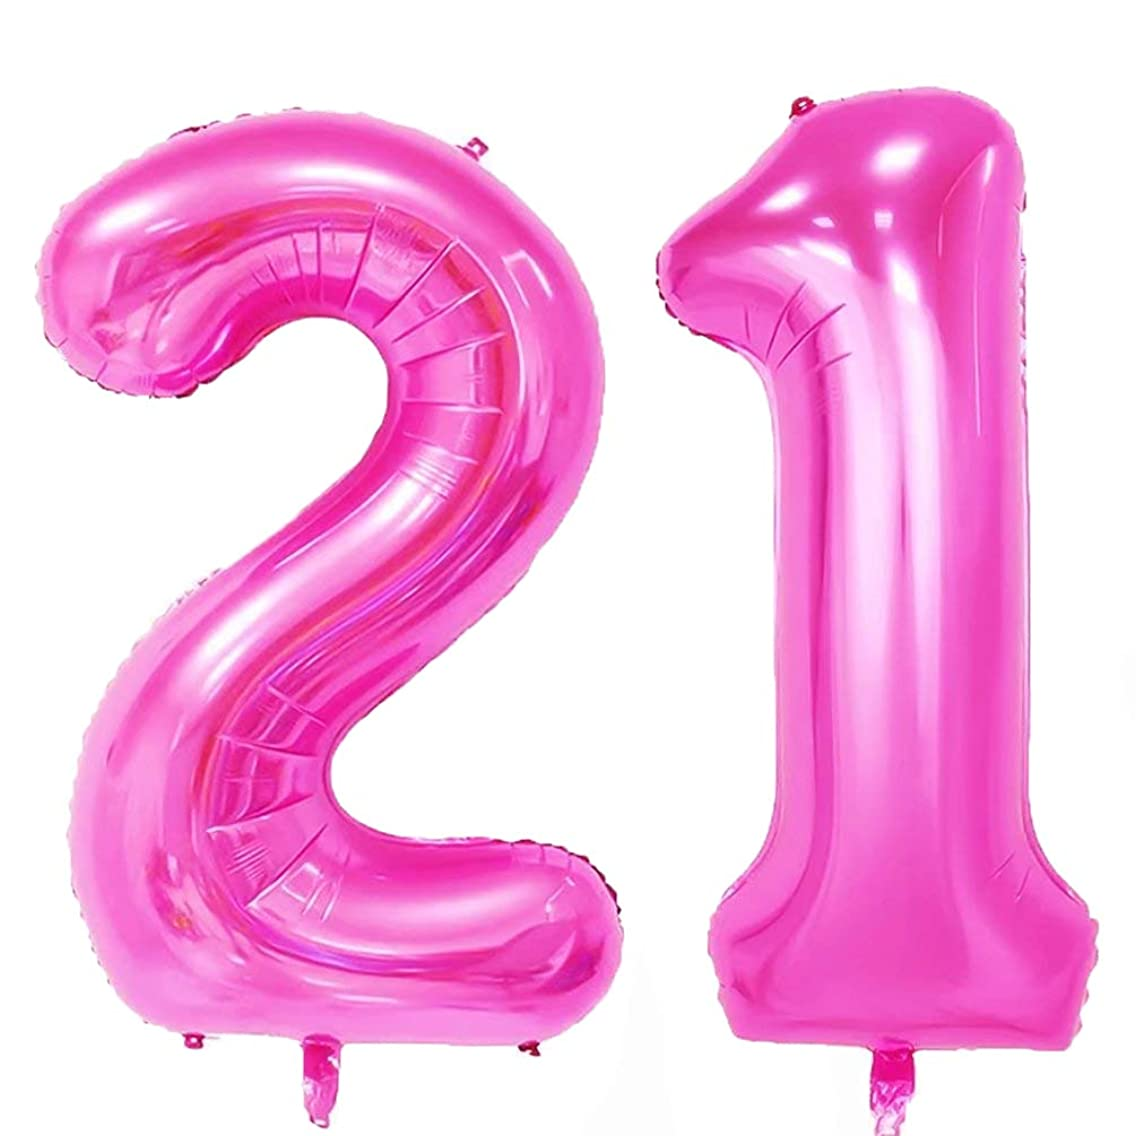 40 in Big Number 21 Balloons Pink Large 21 Number Balloons for 21st Birthday Decorations by AZOWA (Pink)